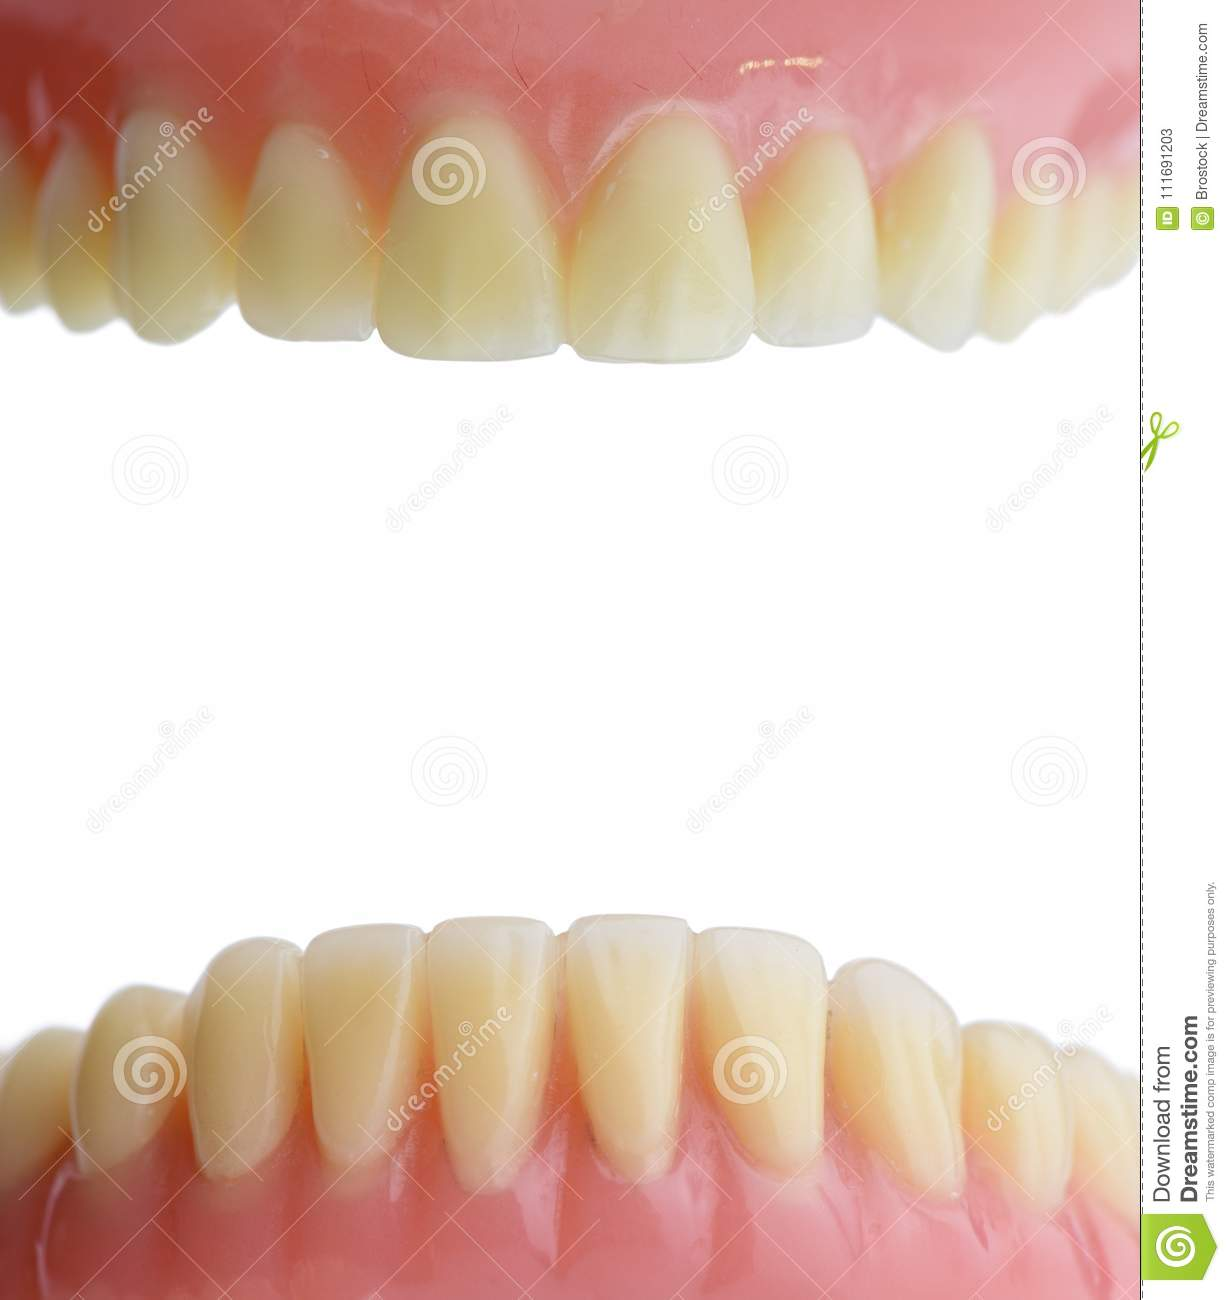 Teeth Gum Human Mouth Anatomy Isolated On White Background Stock